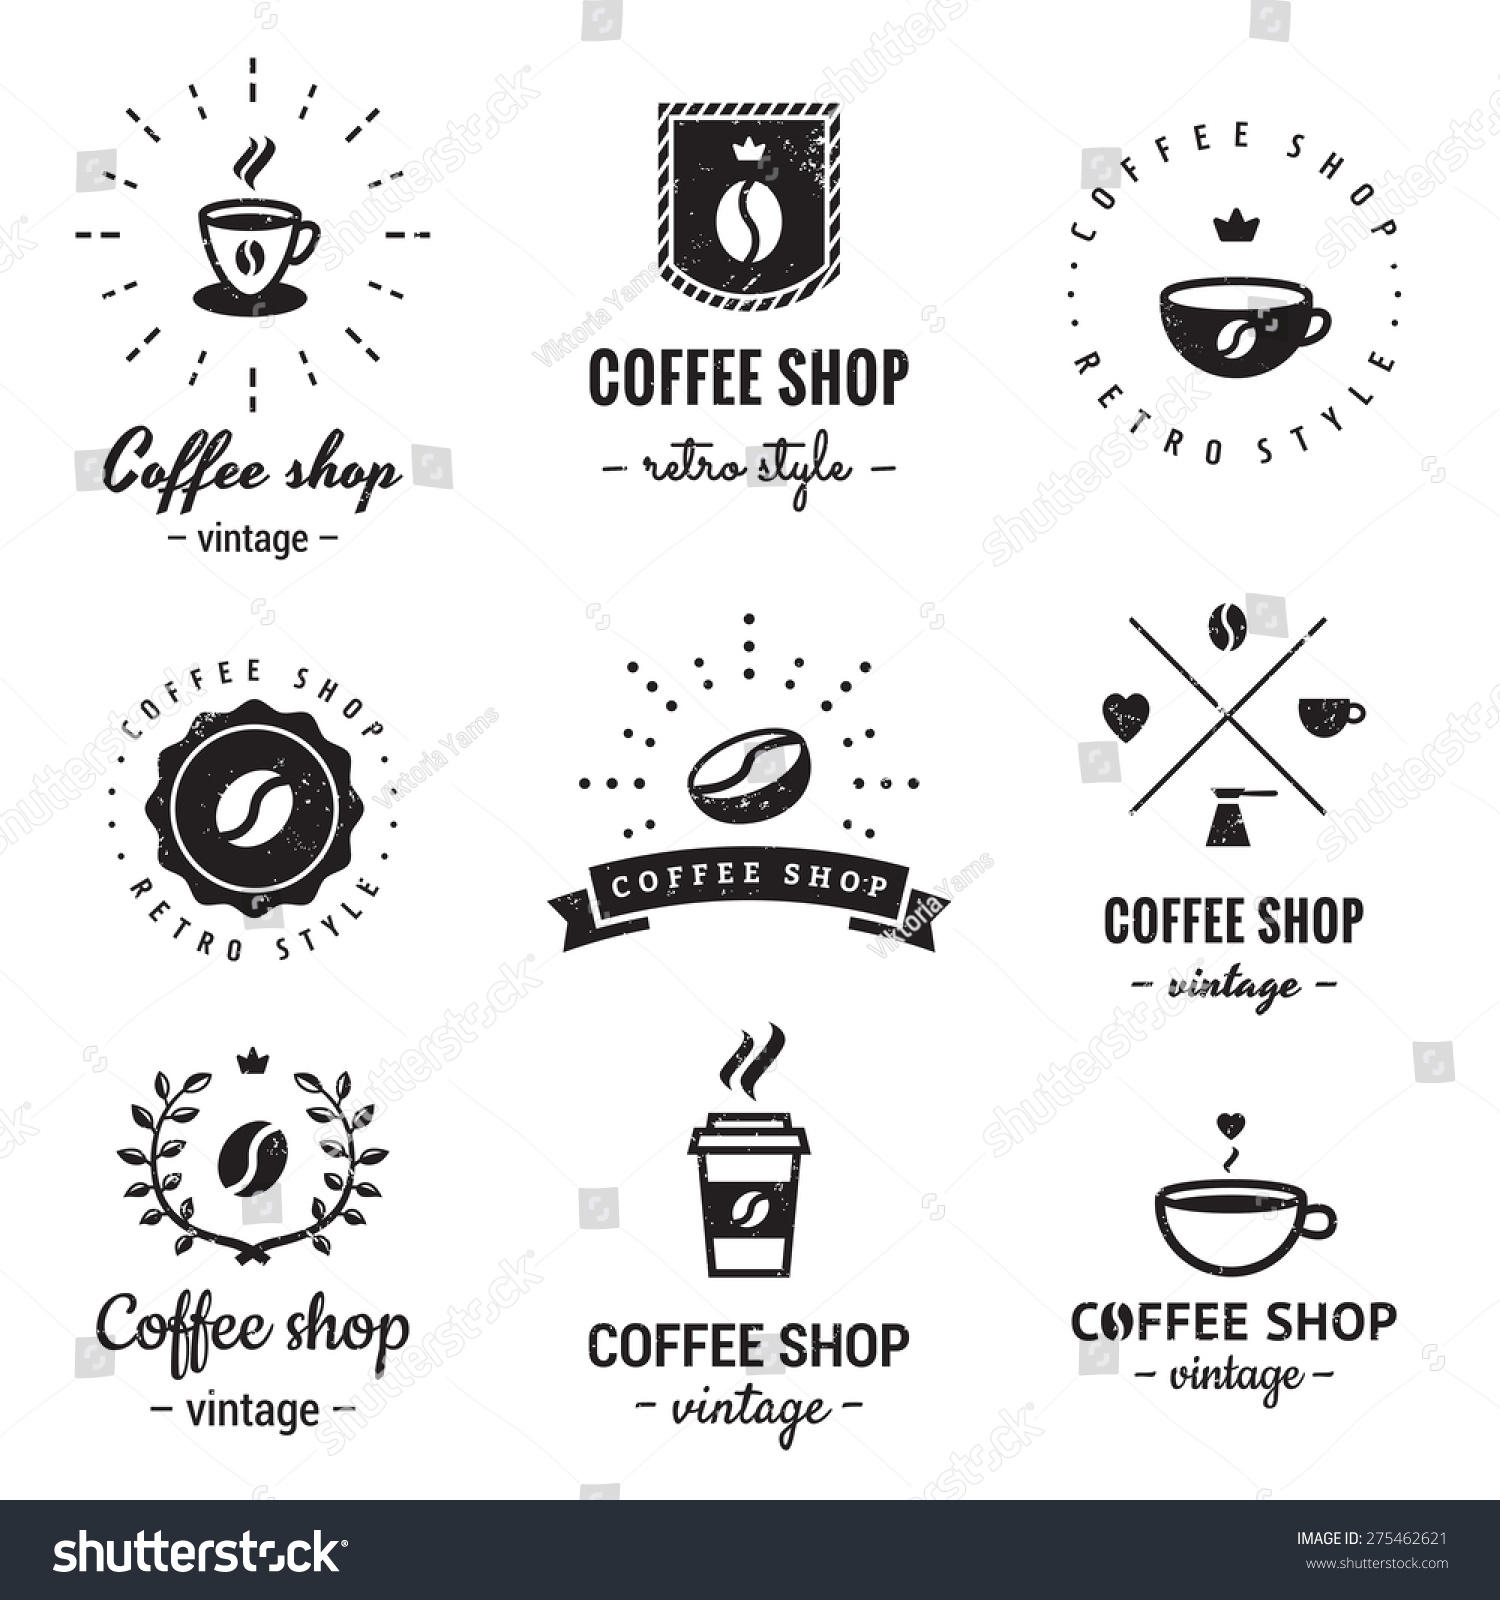 Art logo logo s coffee logo coffee shop coffee design shop logo coffee - Coffee Shop Logo Vintage Vector Set Hipster And Retro Style Perfect For Your Business